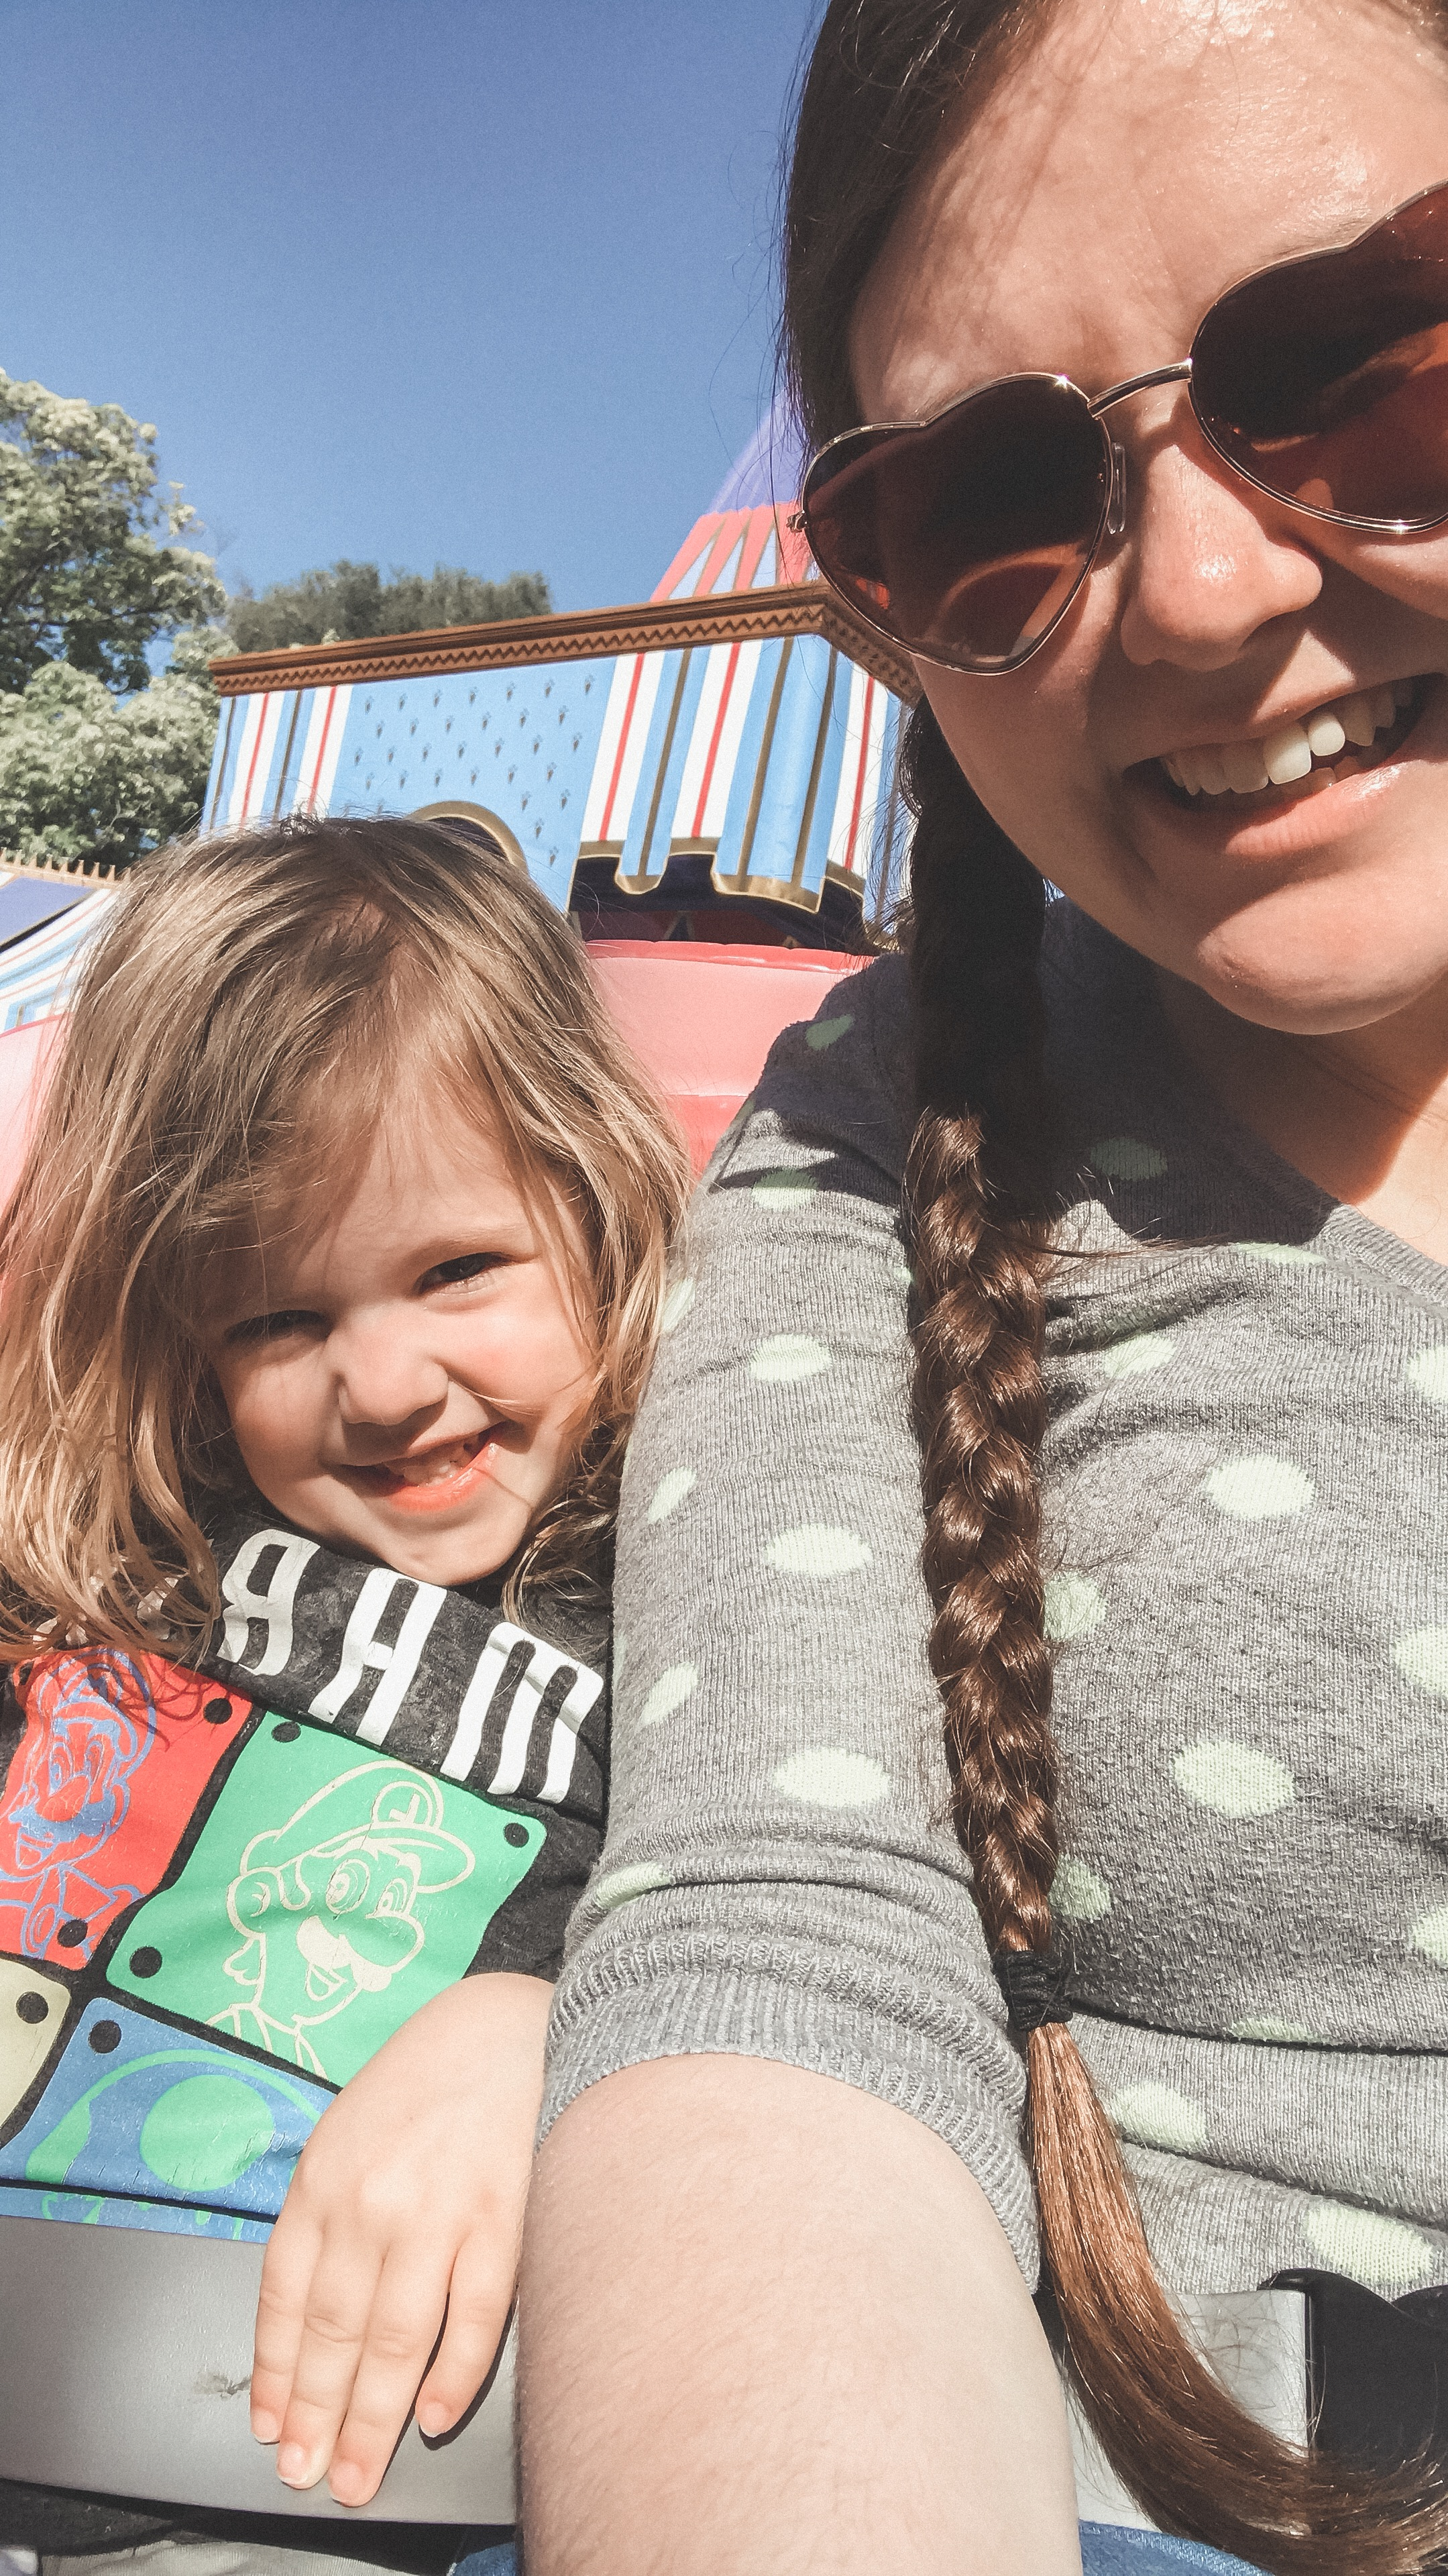 A girl wearing sunglasses with her daughter taking a selfie